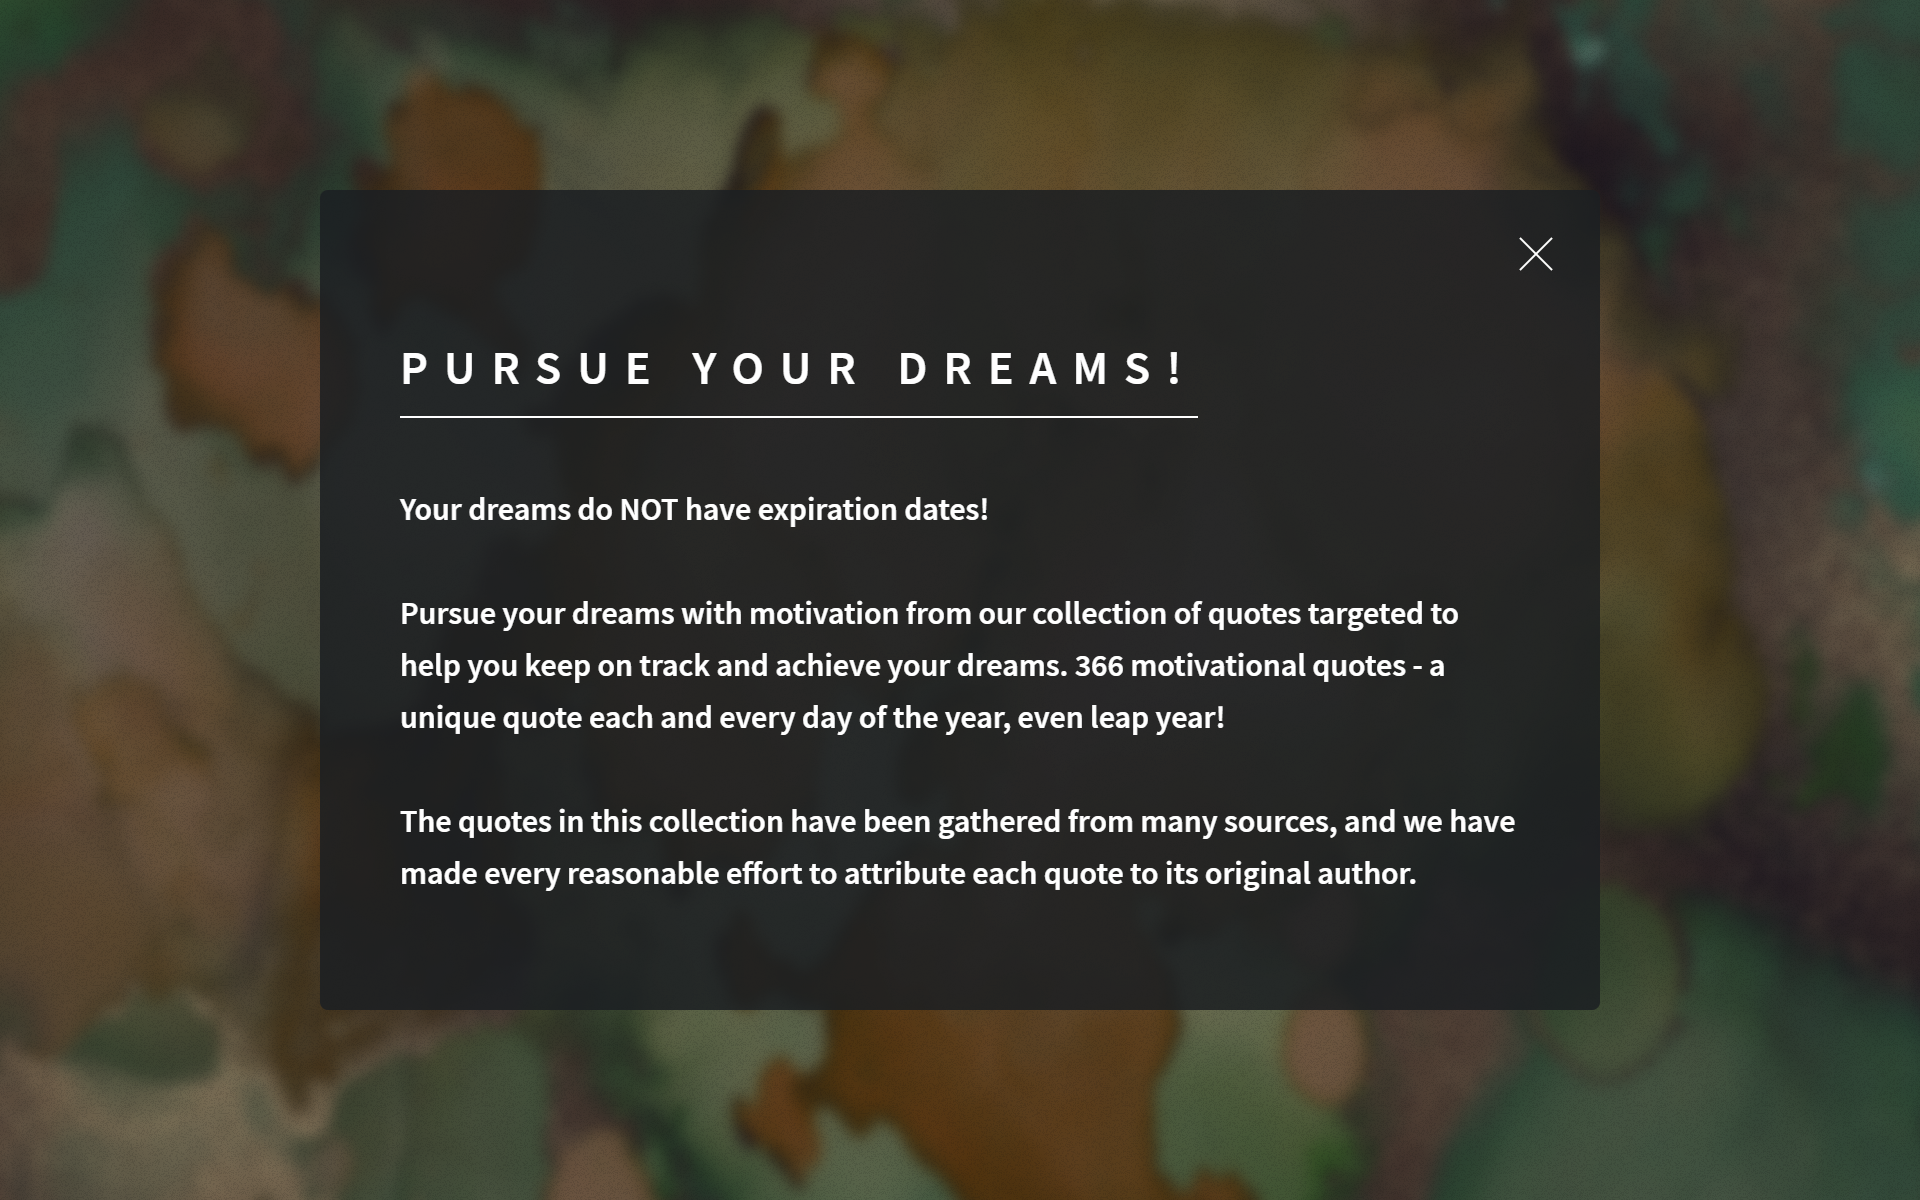 Amazon.com: PURSUE YOUR DREAMS! 366 Motivational Quotes ...